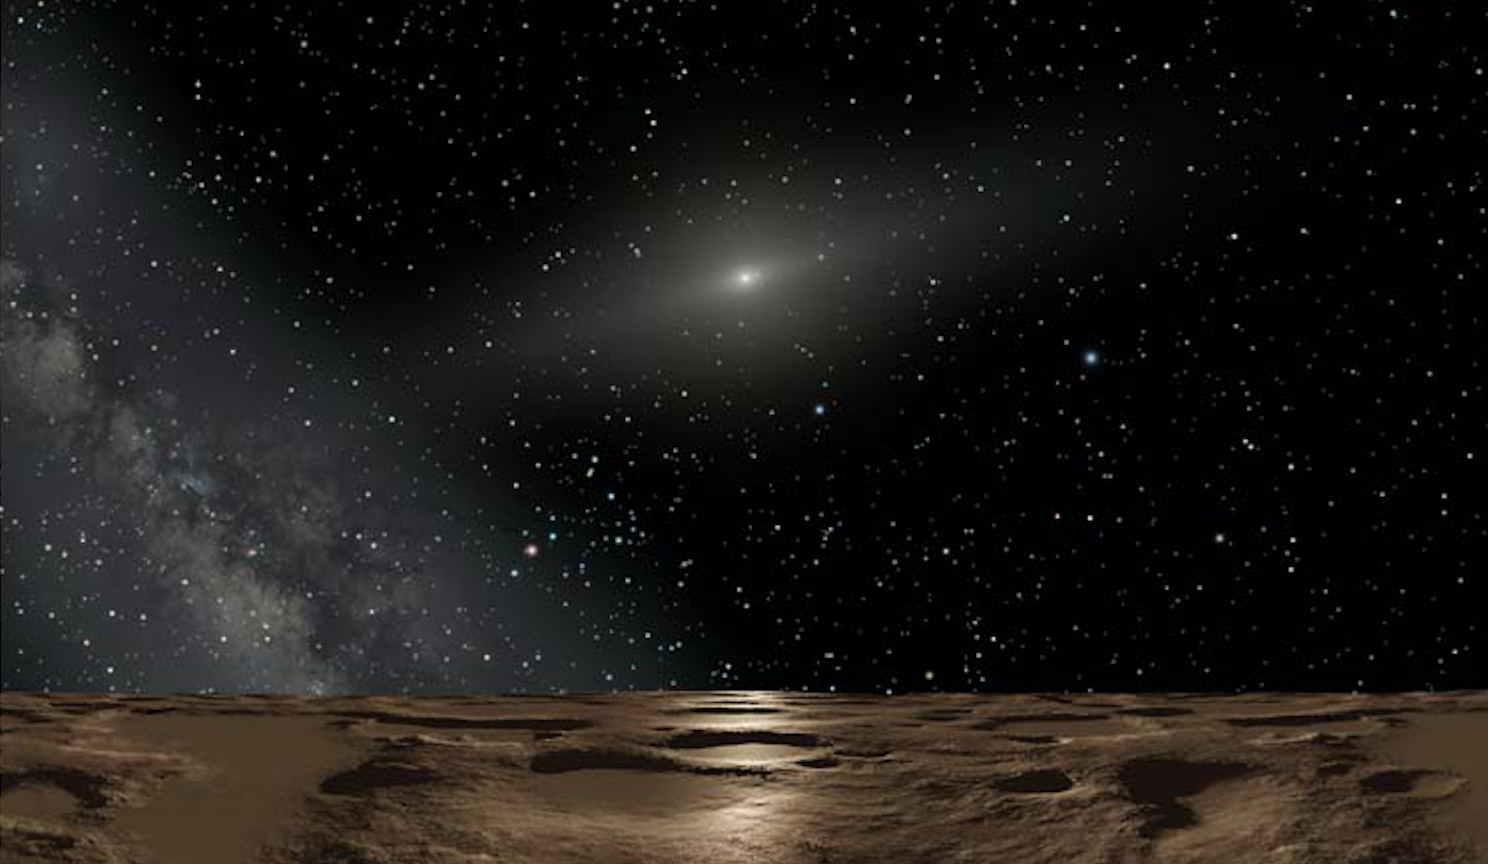 Featured image: The long hunt for new objects in our expanding solar system